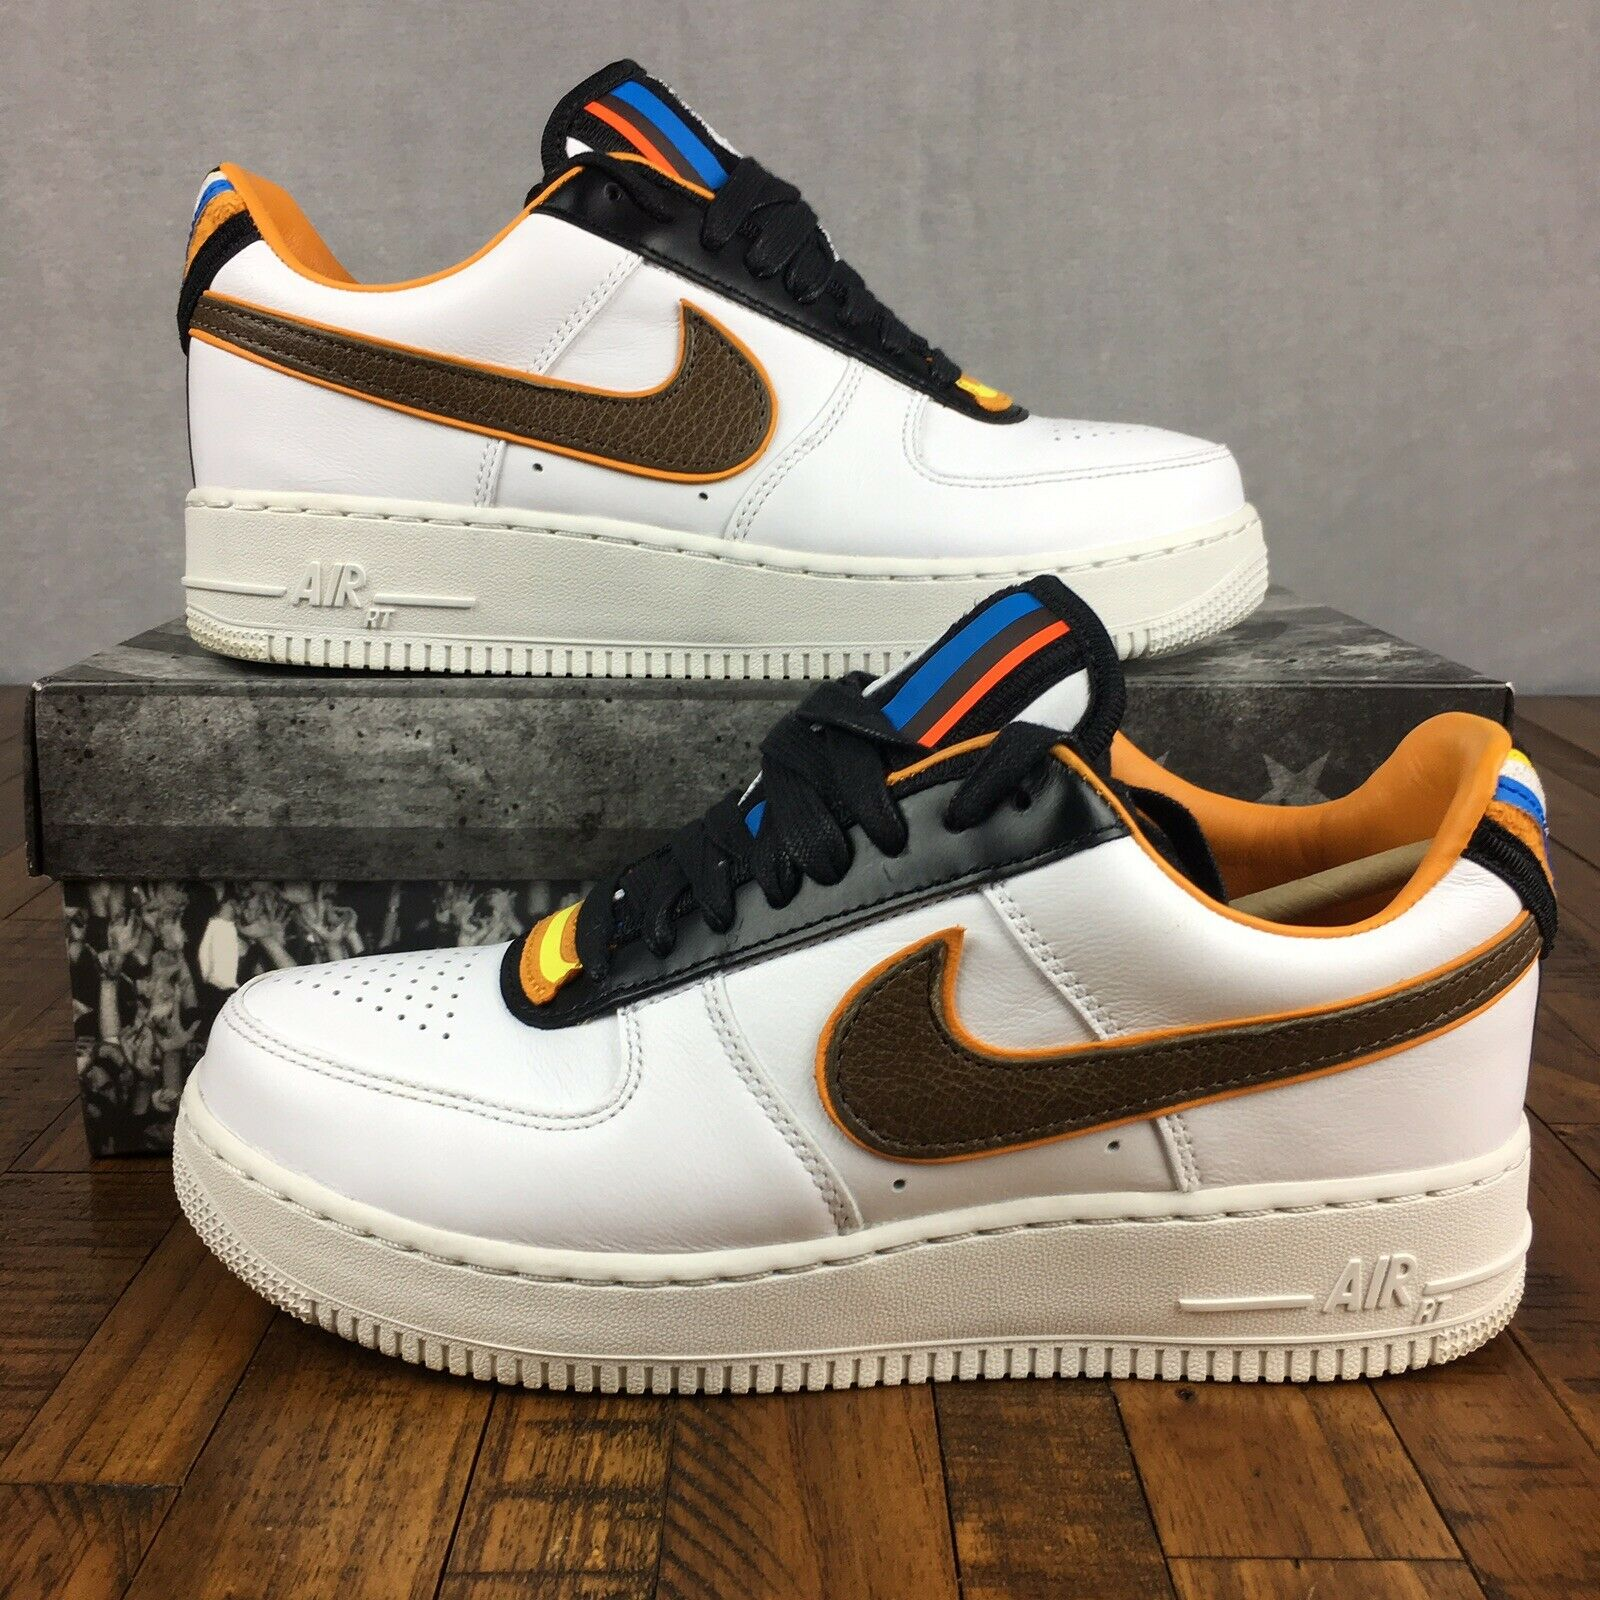 Nike Air Force 1 Low SP Tisci Givenchy Riccardo 669917 120 Youth Size 7 Wmns 8.5